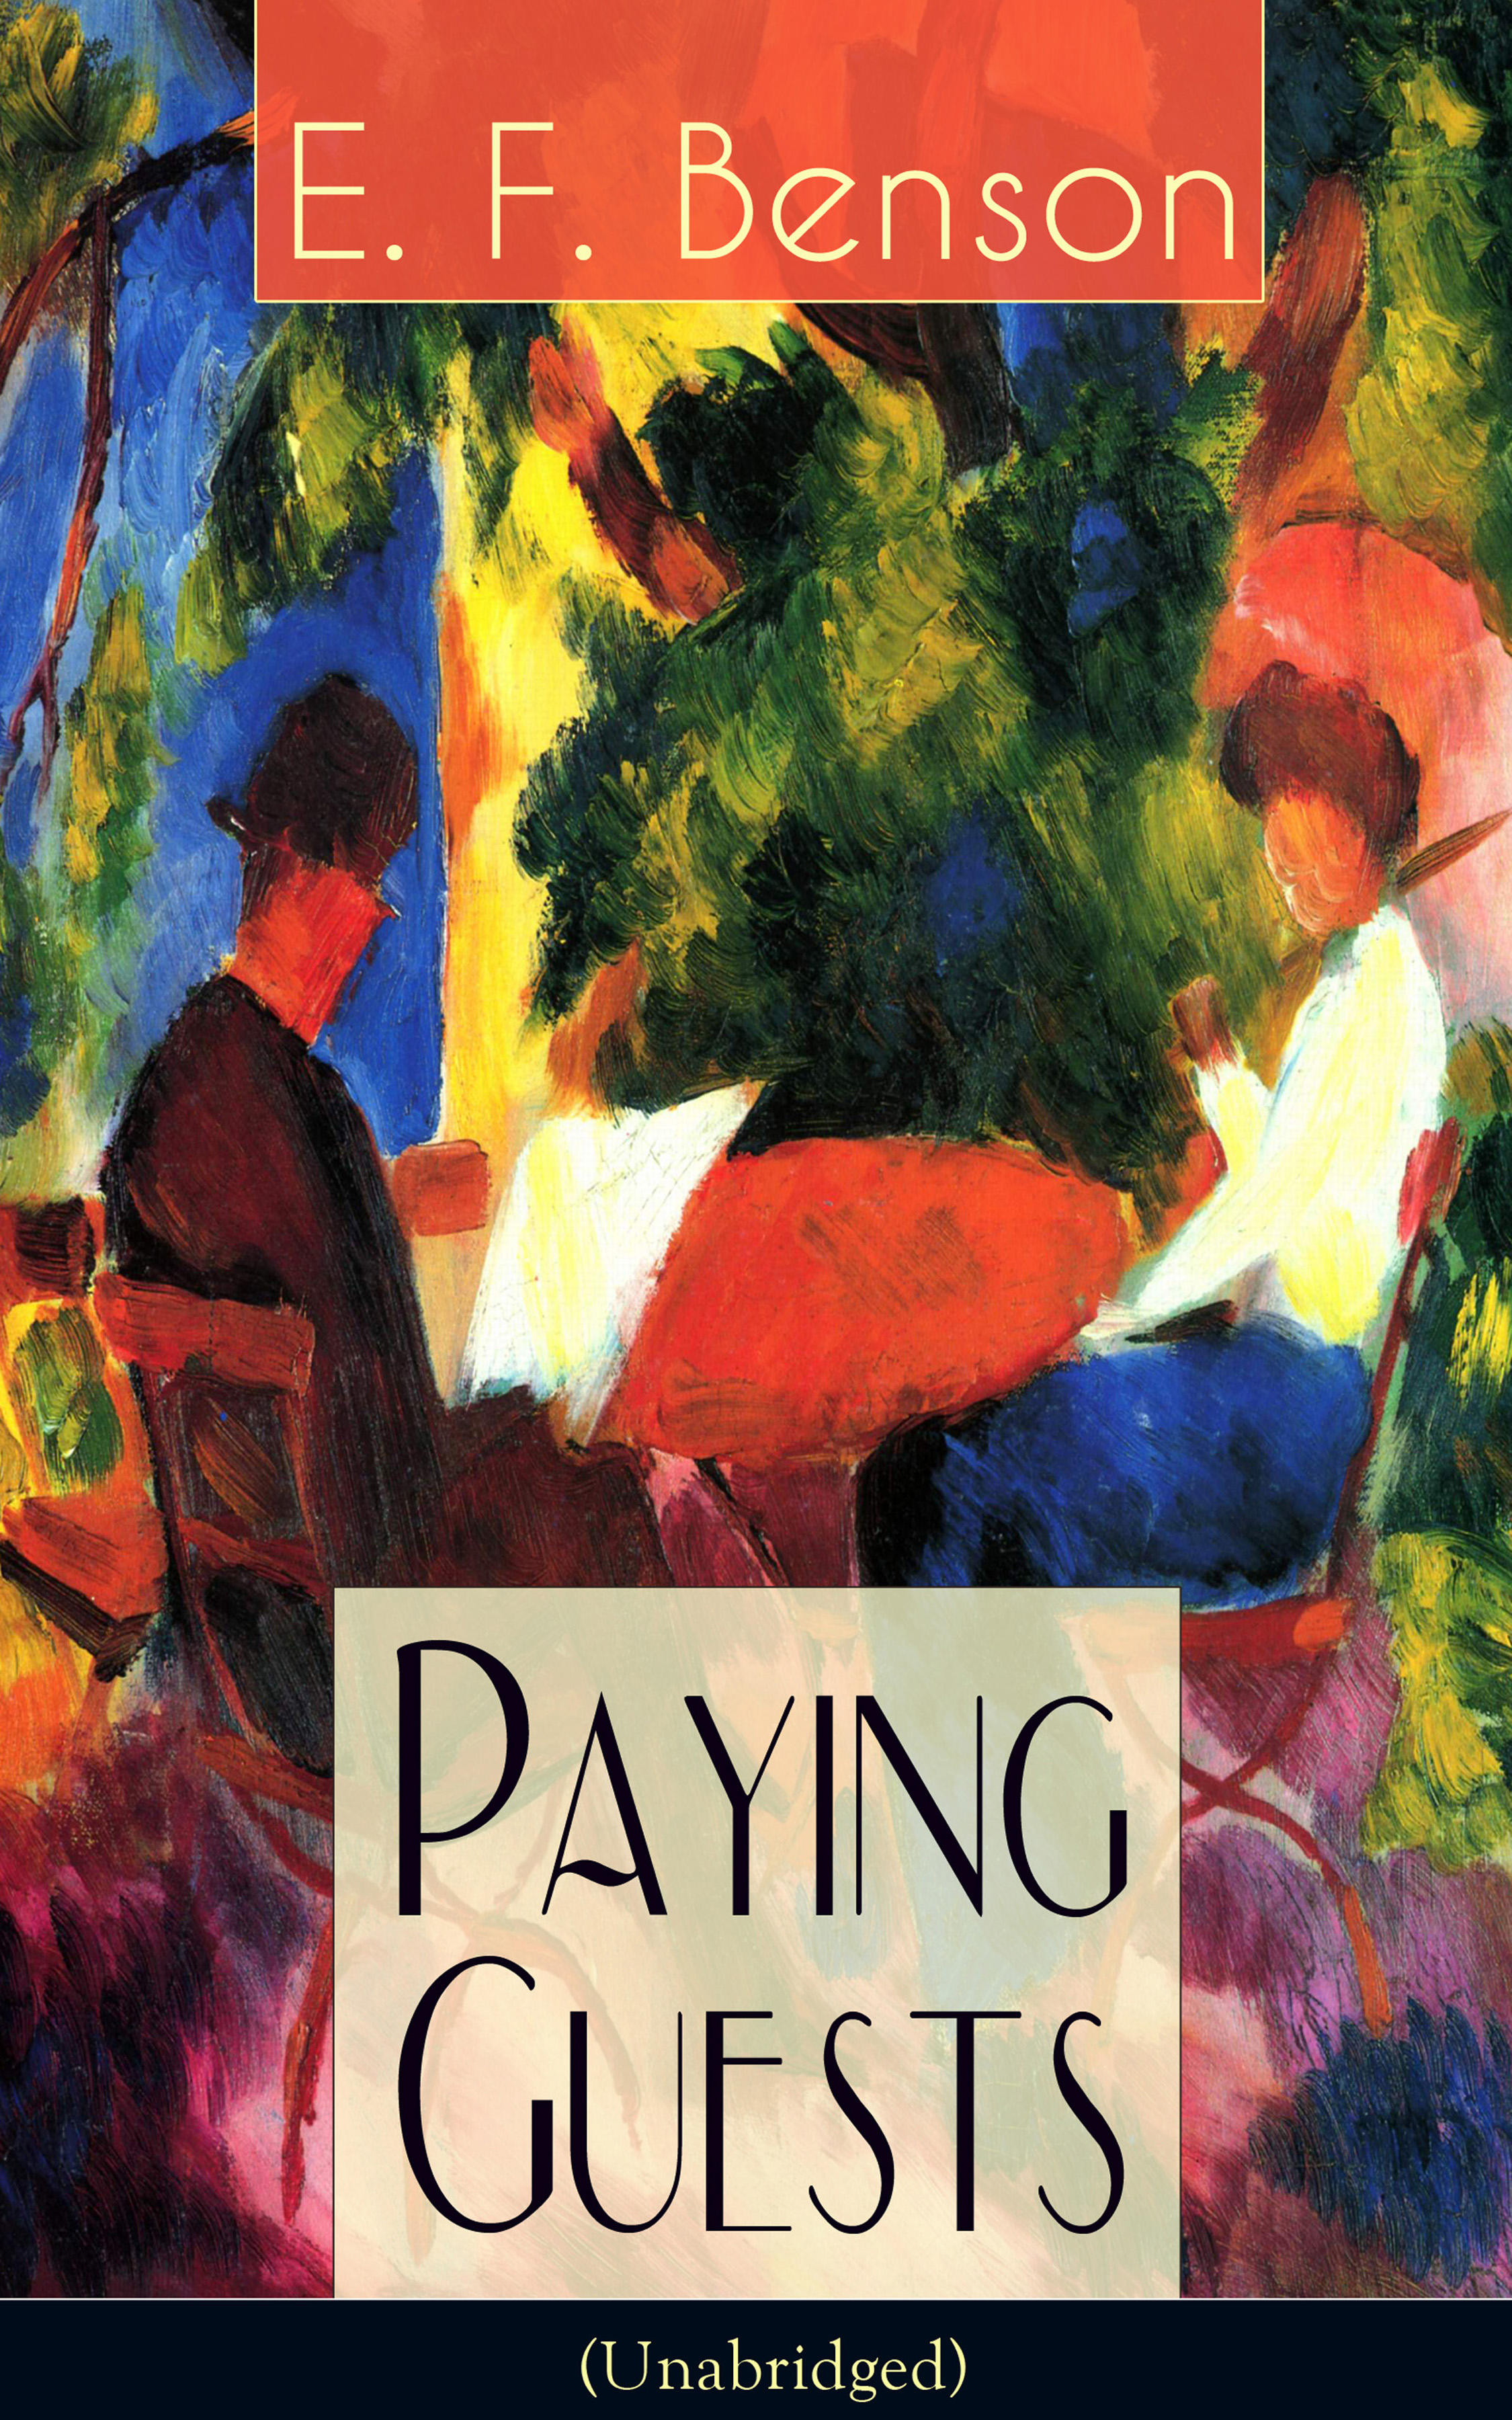 Эдвард Бенсон Paying Guests (Unabridged): Satirical Novel from the author of Queen Lucia, Miss Mapp, Lucia in London, Mapp and Lucia, David Blaize, Dodo, Spook Stories, The Relentless City, The Angel of Pain, The Rubicon lucia st clair robson the tokaido road a novel of feudal japan